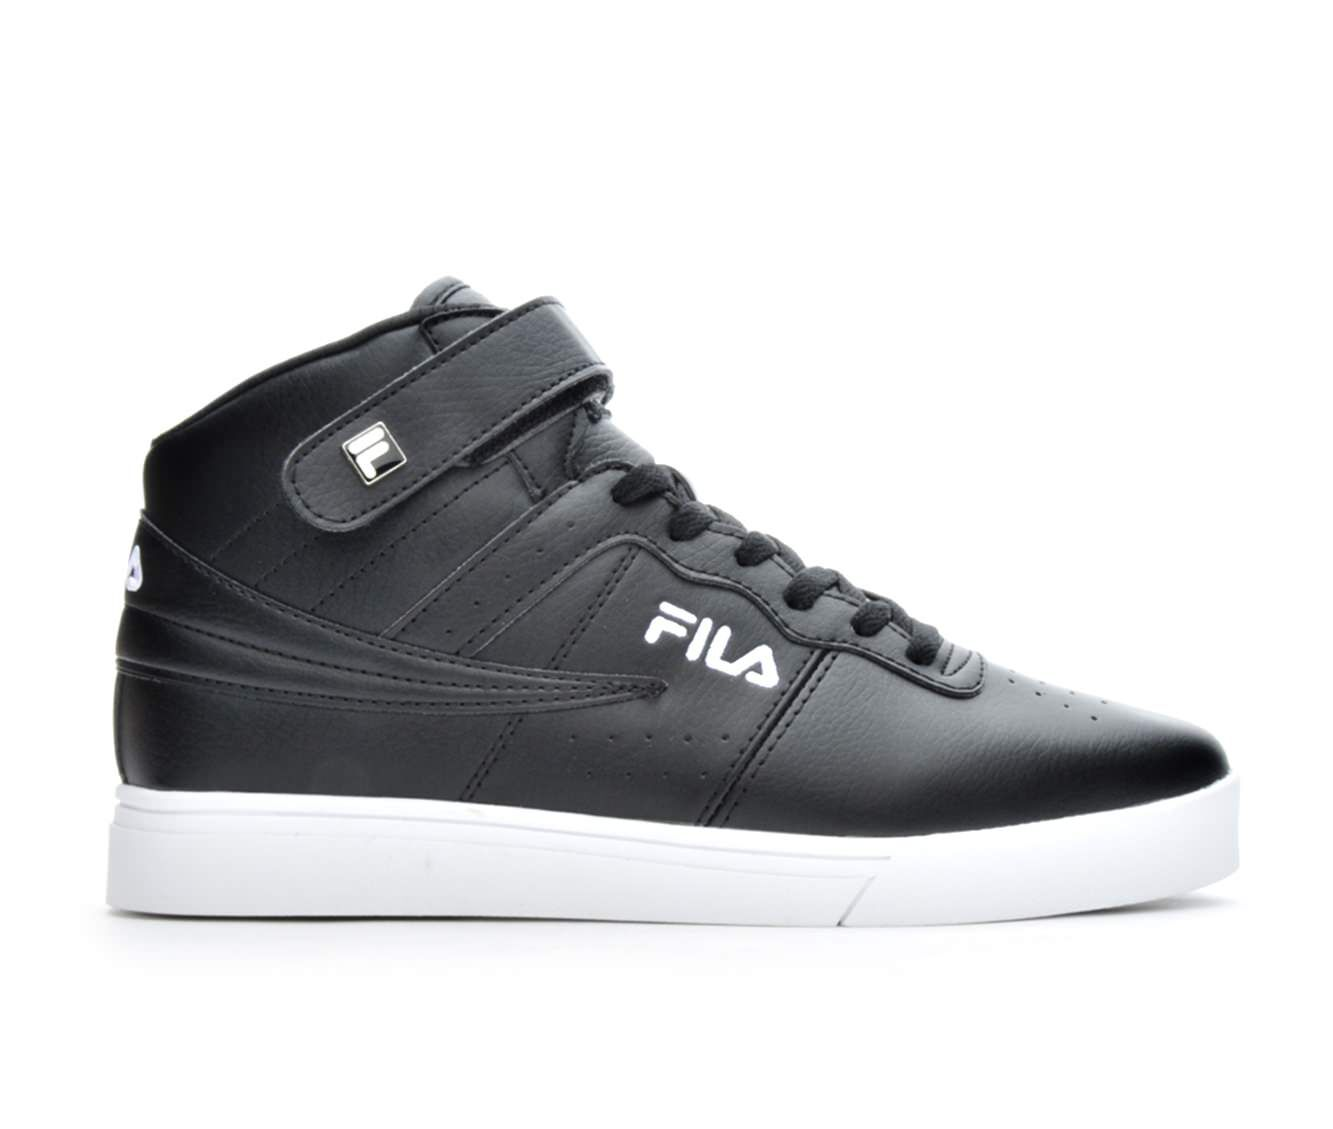 purchase cheap new style Men's Fila Vulc 13 Mid Plus Retro Sneakers Black/White